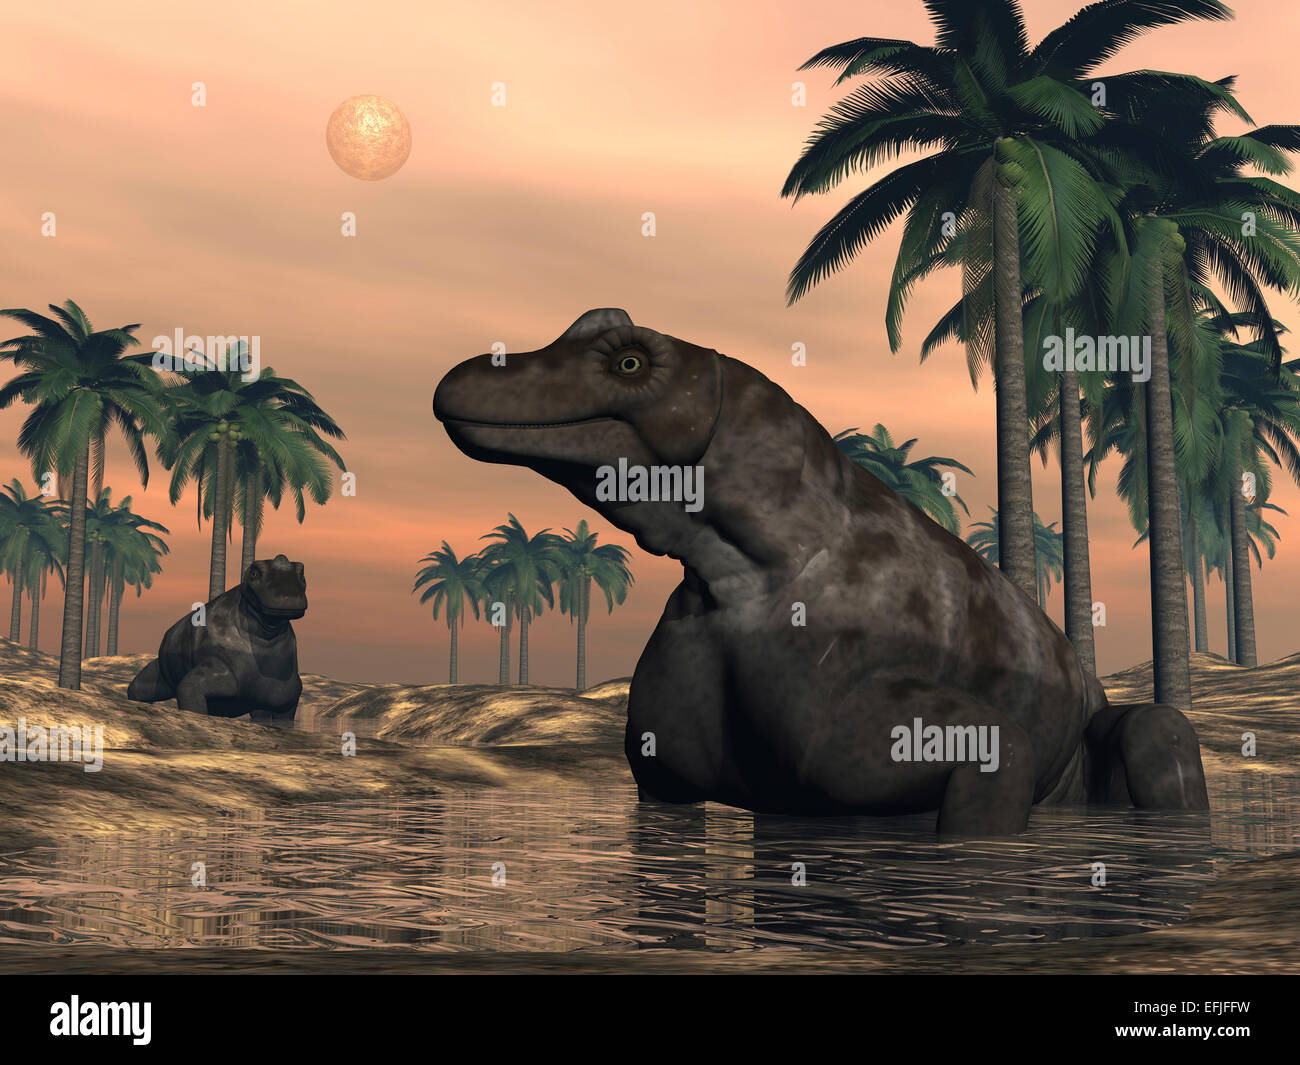 Keratocephalus dinosaurs in a small lake at sunset. - Stock Image